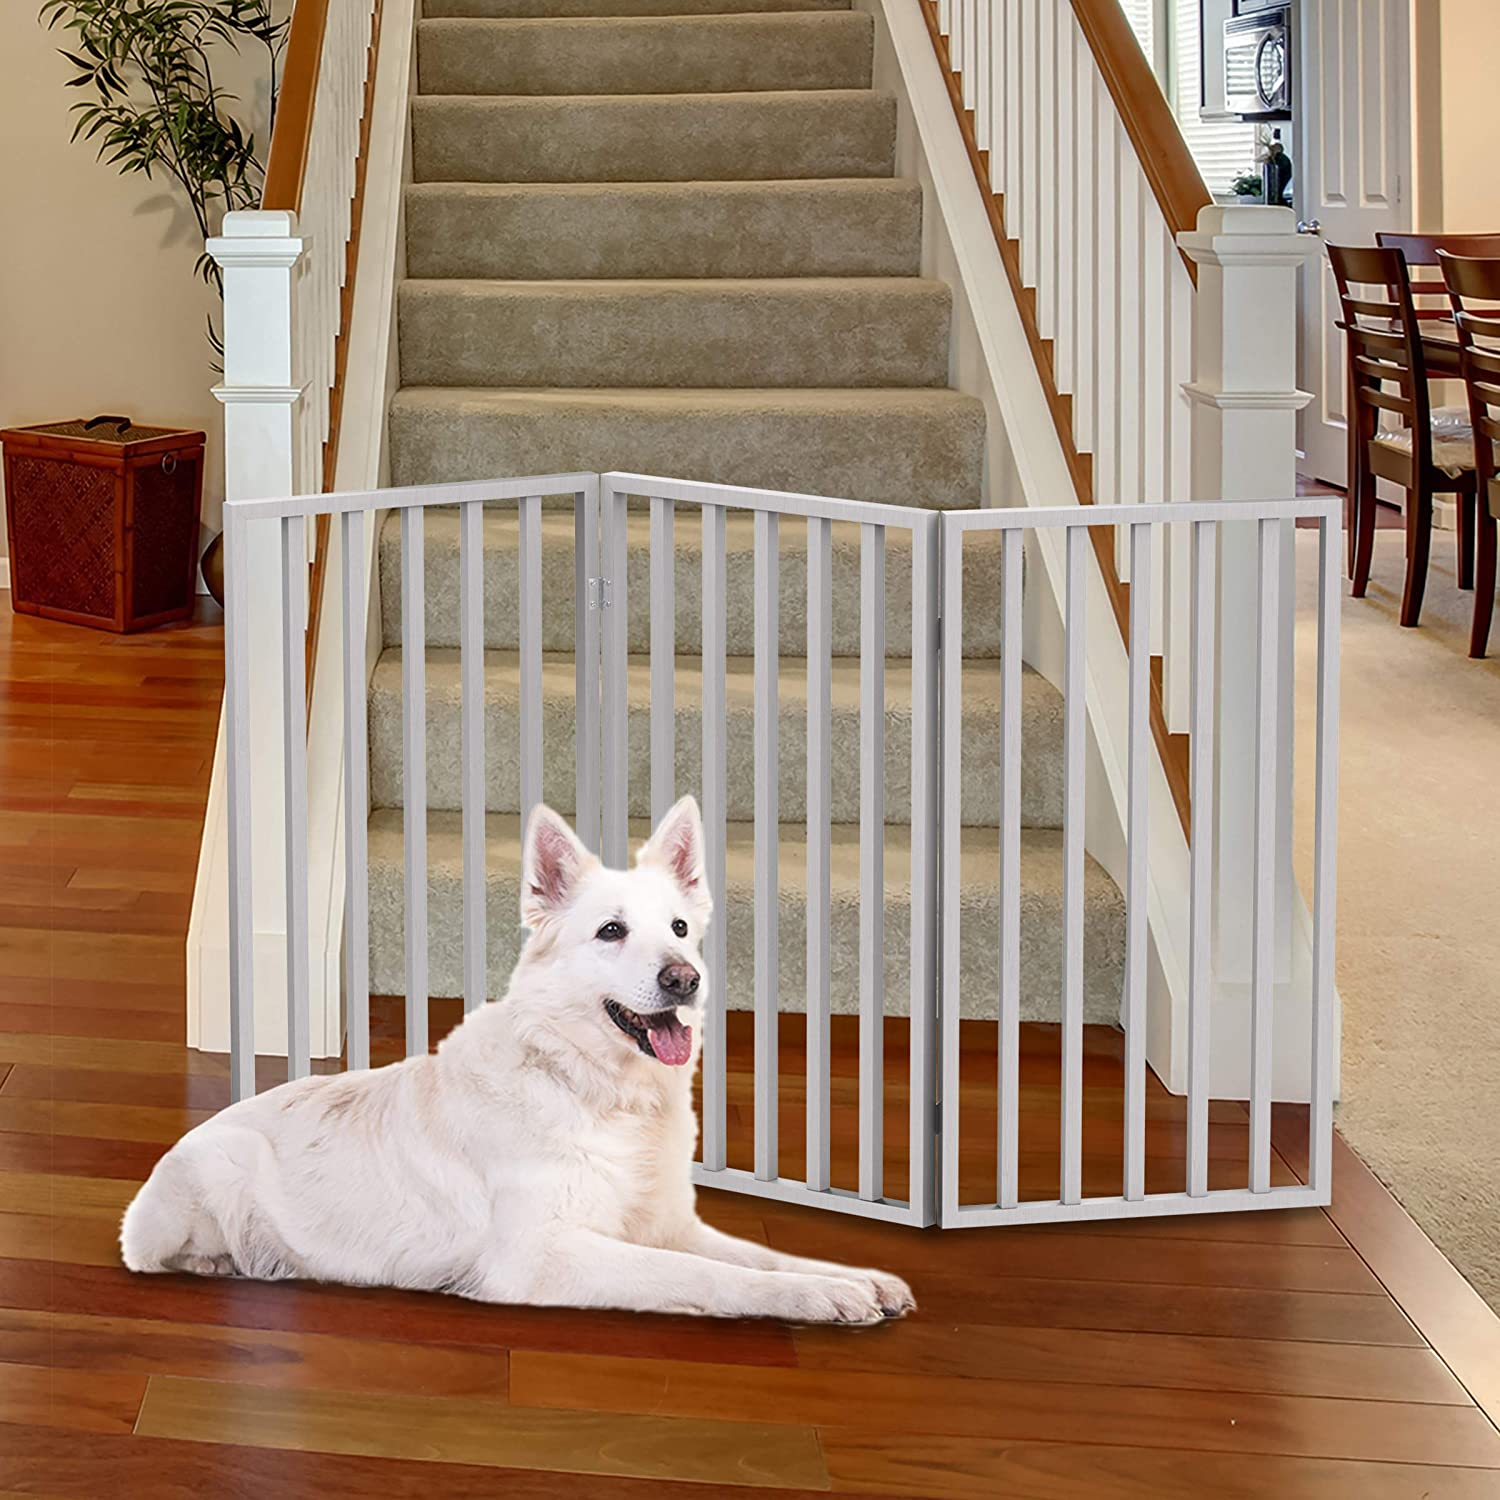 """PETMAKER Wooden Pet Gate Tall Freestanding 3Panel Indoor Barrier Fence, Lightweight and Foldable for Dogs, Puppies, Pets 54 x32"""" (White)"""